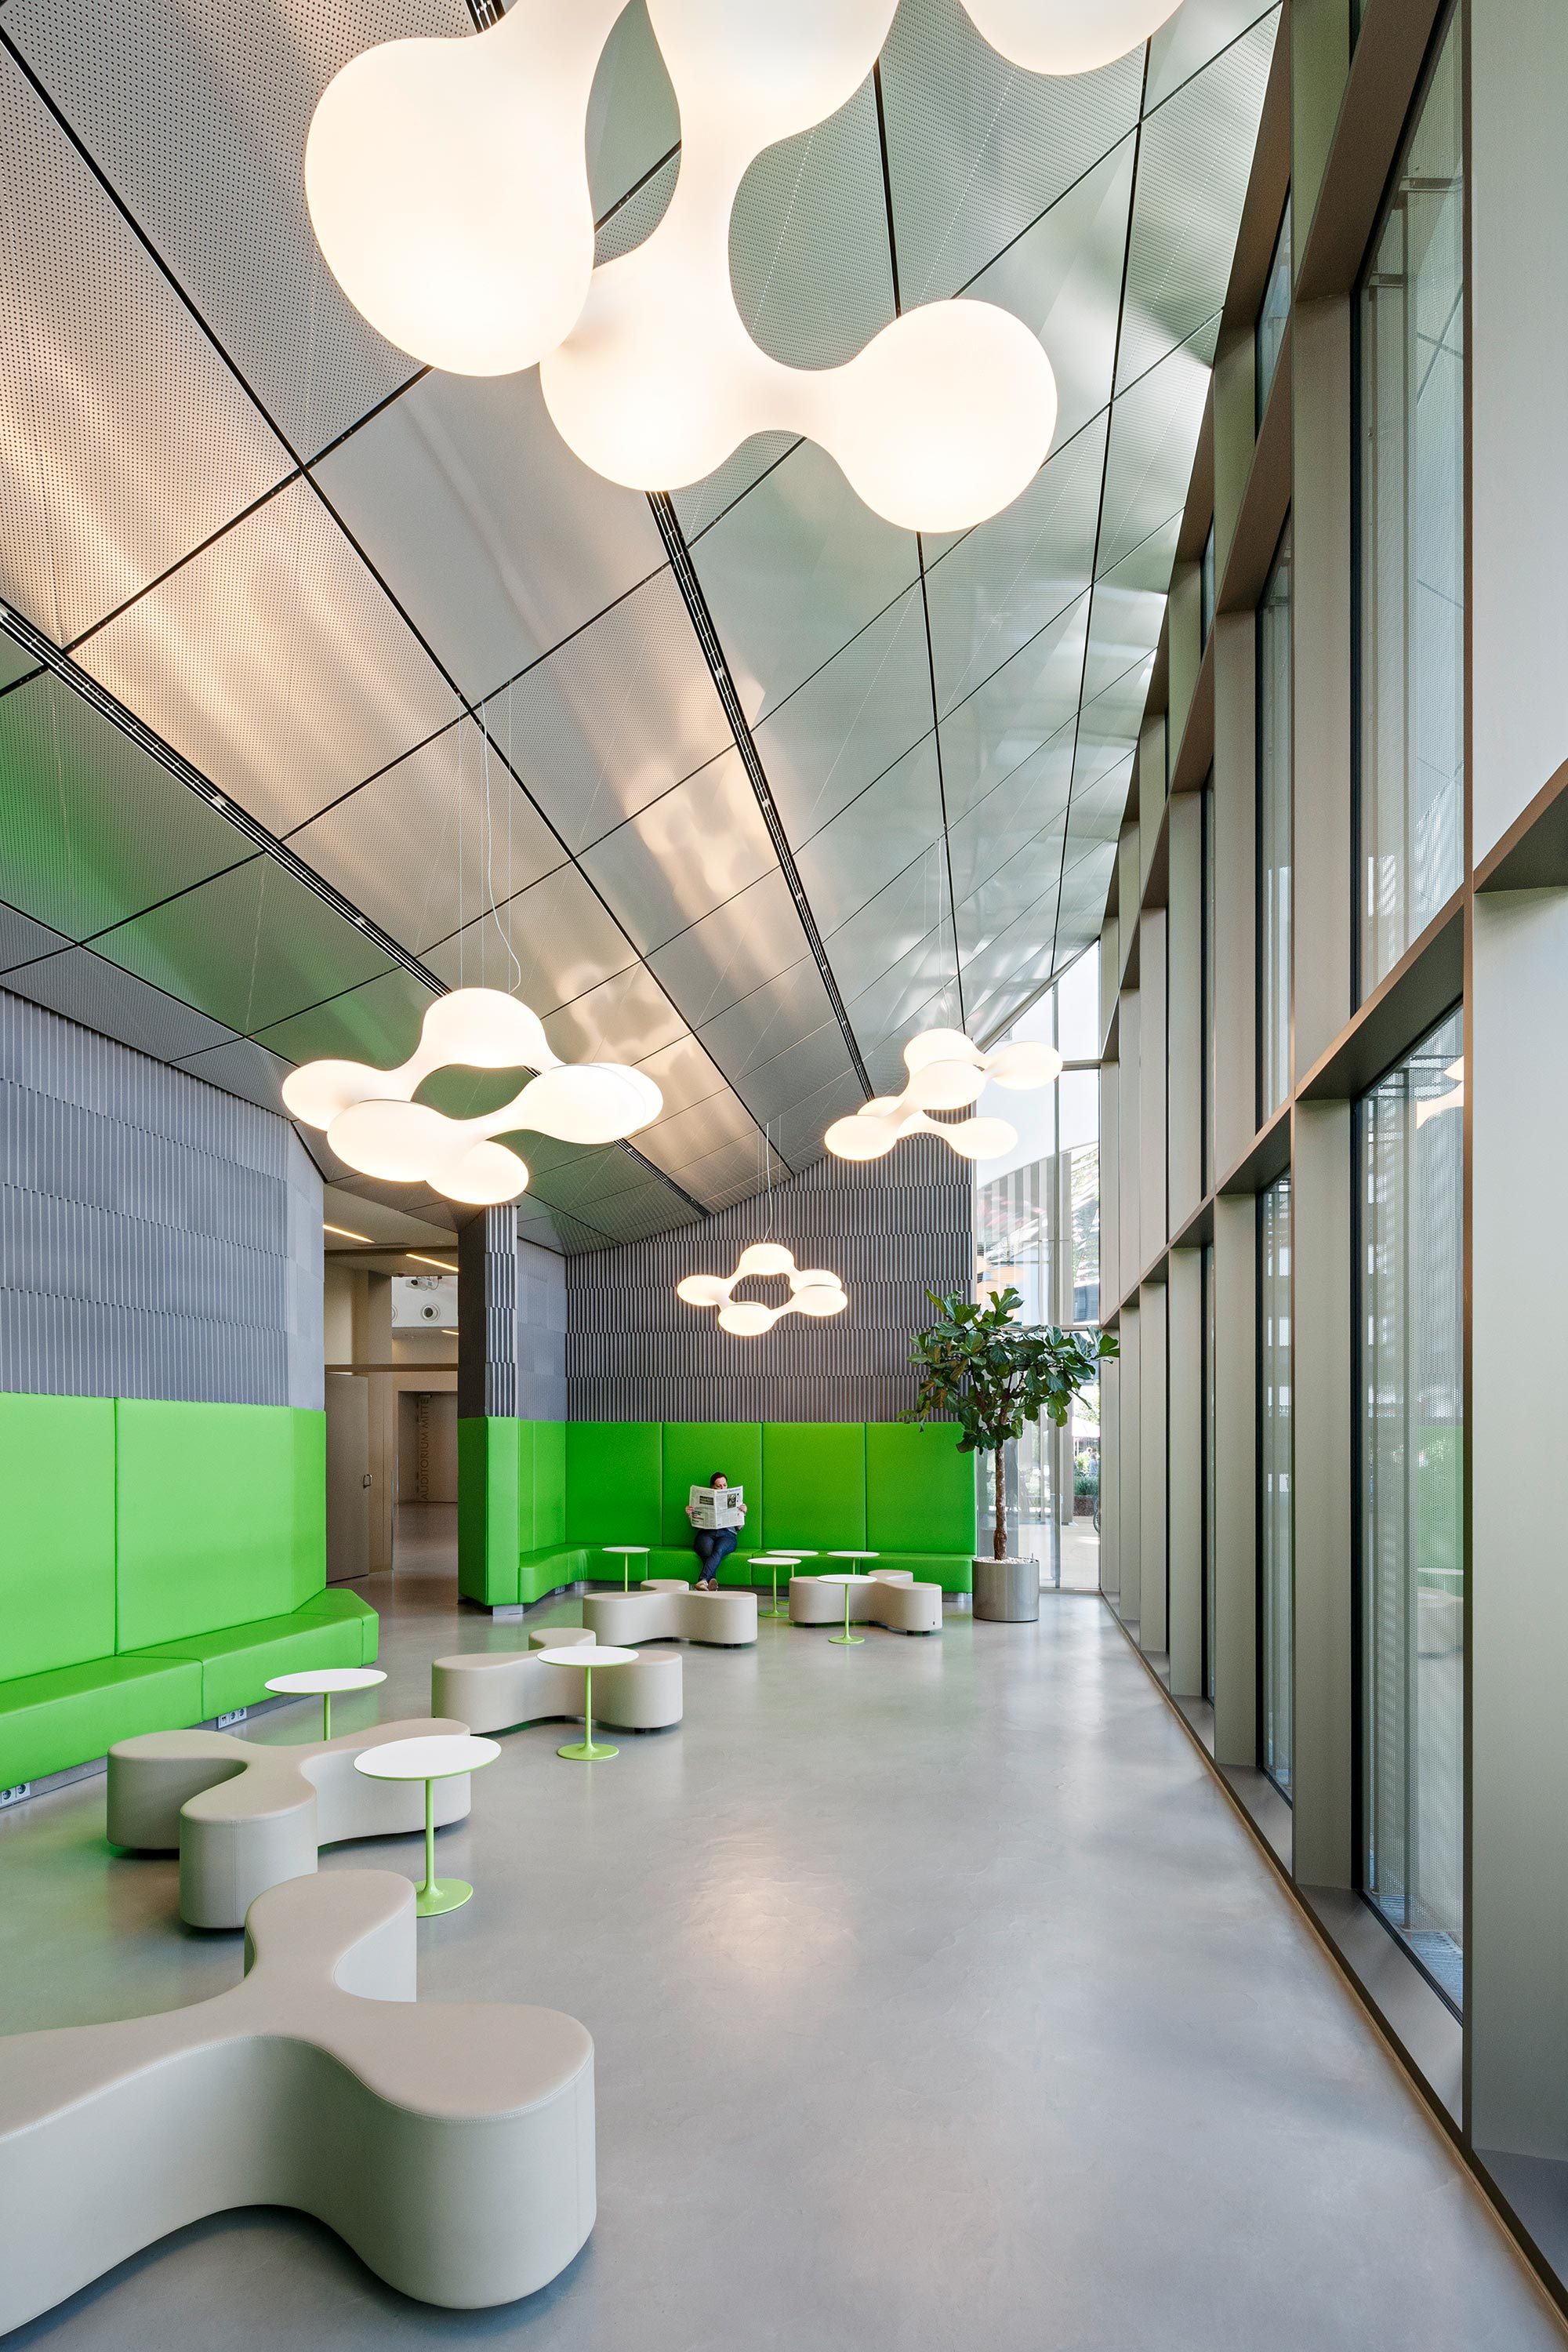 Paracelsus Medical University, Green Corner. Photo: Hertha Hurnaus | Berger+Parkkinen Architekten